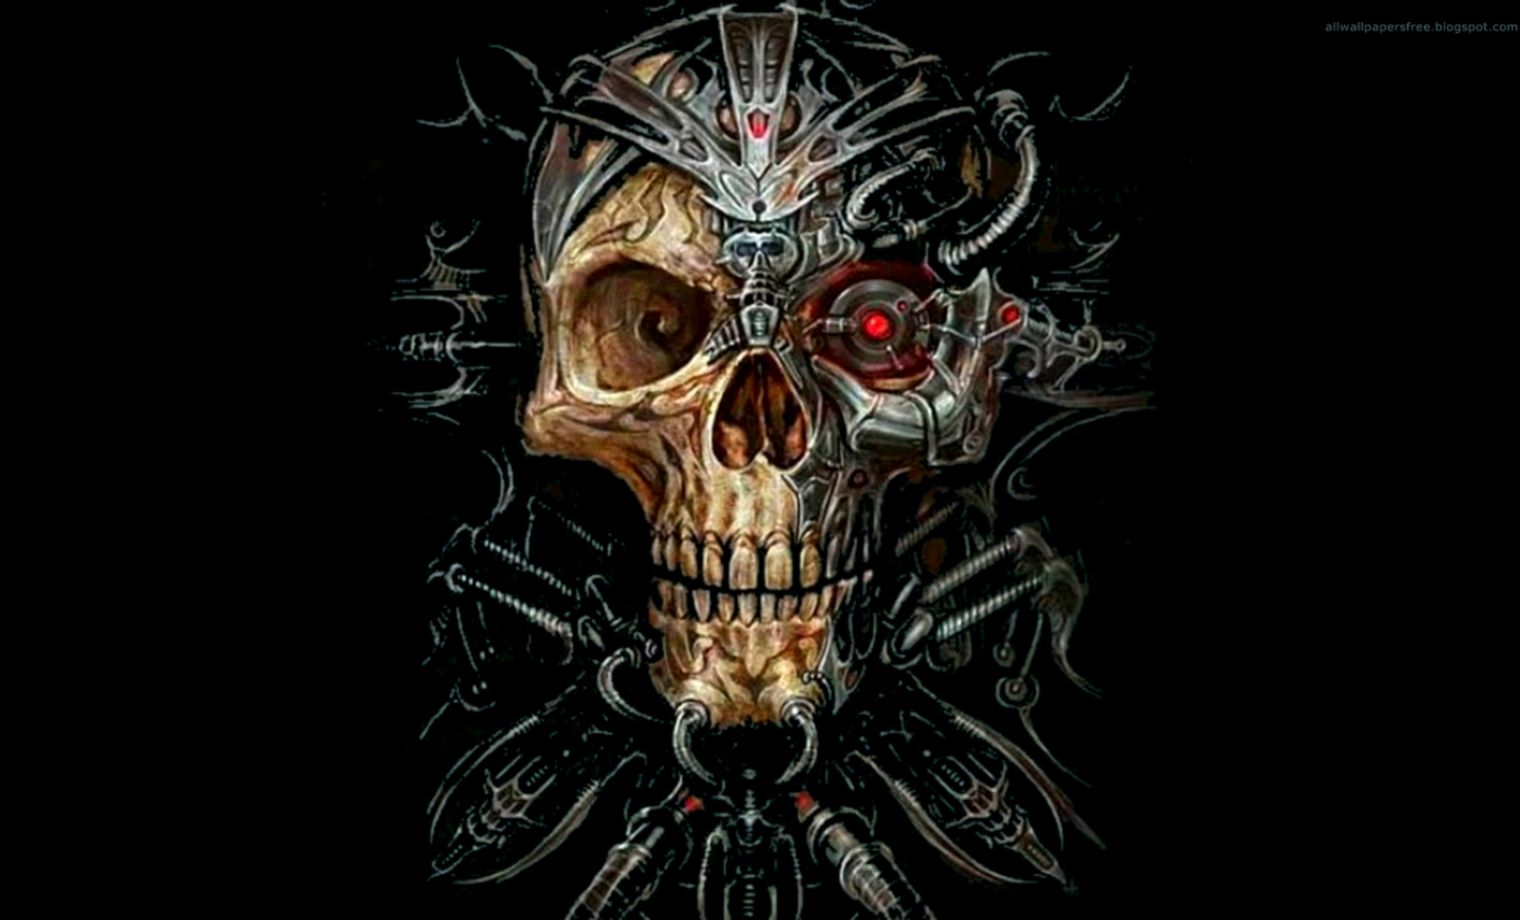 Fantastic Wallpaper High Resolution Skull - skull-wallpapers-hd-37-83114-full-hd-wallpapers-wallpaper-photo  Best Photo Reference_21393.jpg